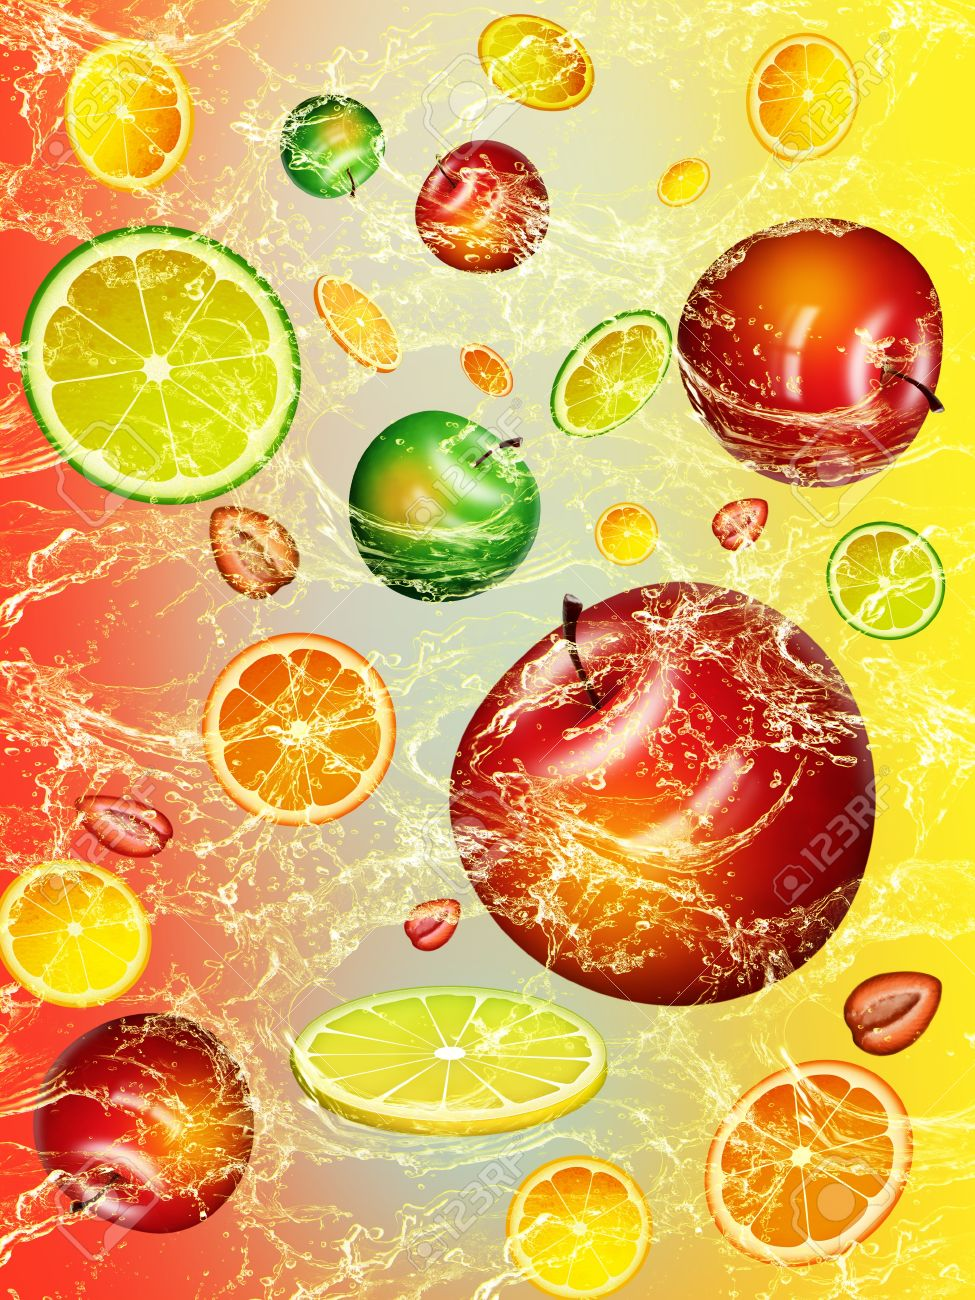 Great Wallpaper Mobile Fruit - 9970719-wallpaper-with-fresh-fruit  You Should Have_263553.jpg